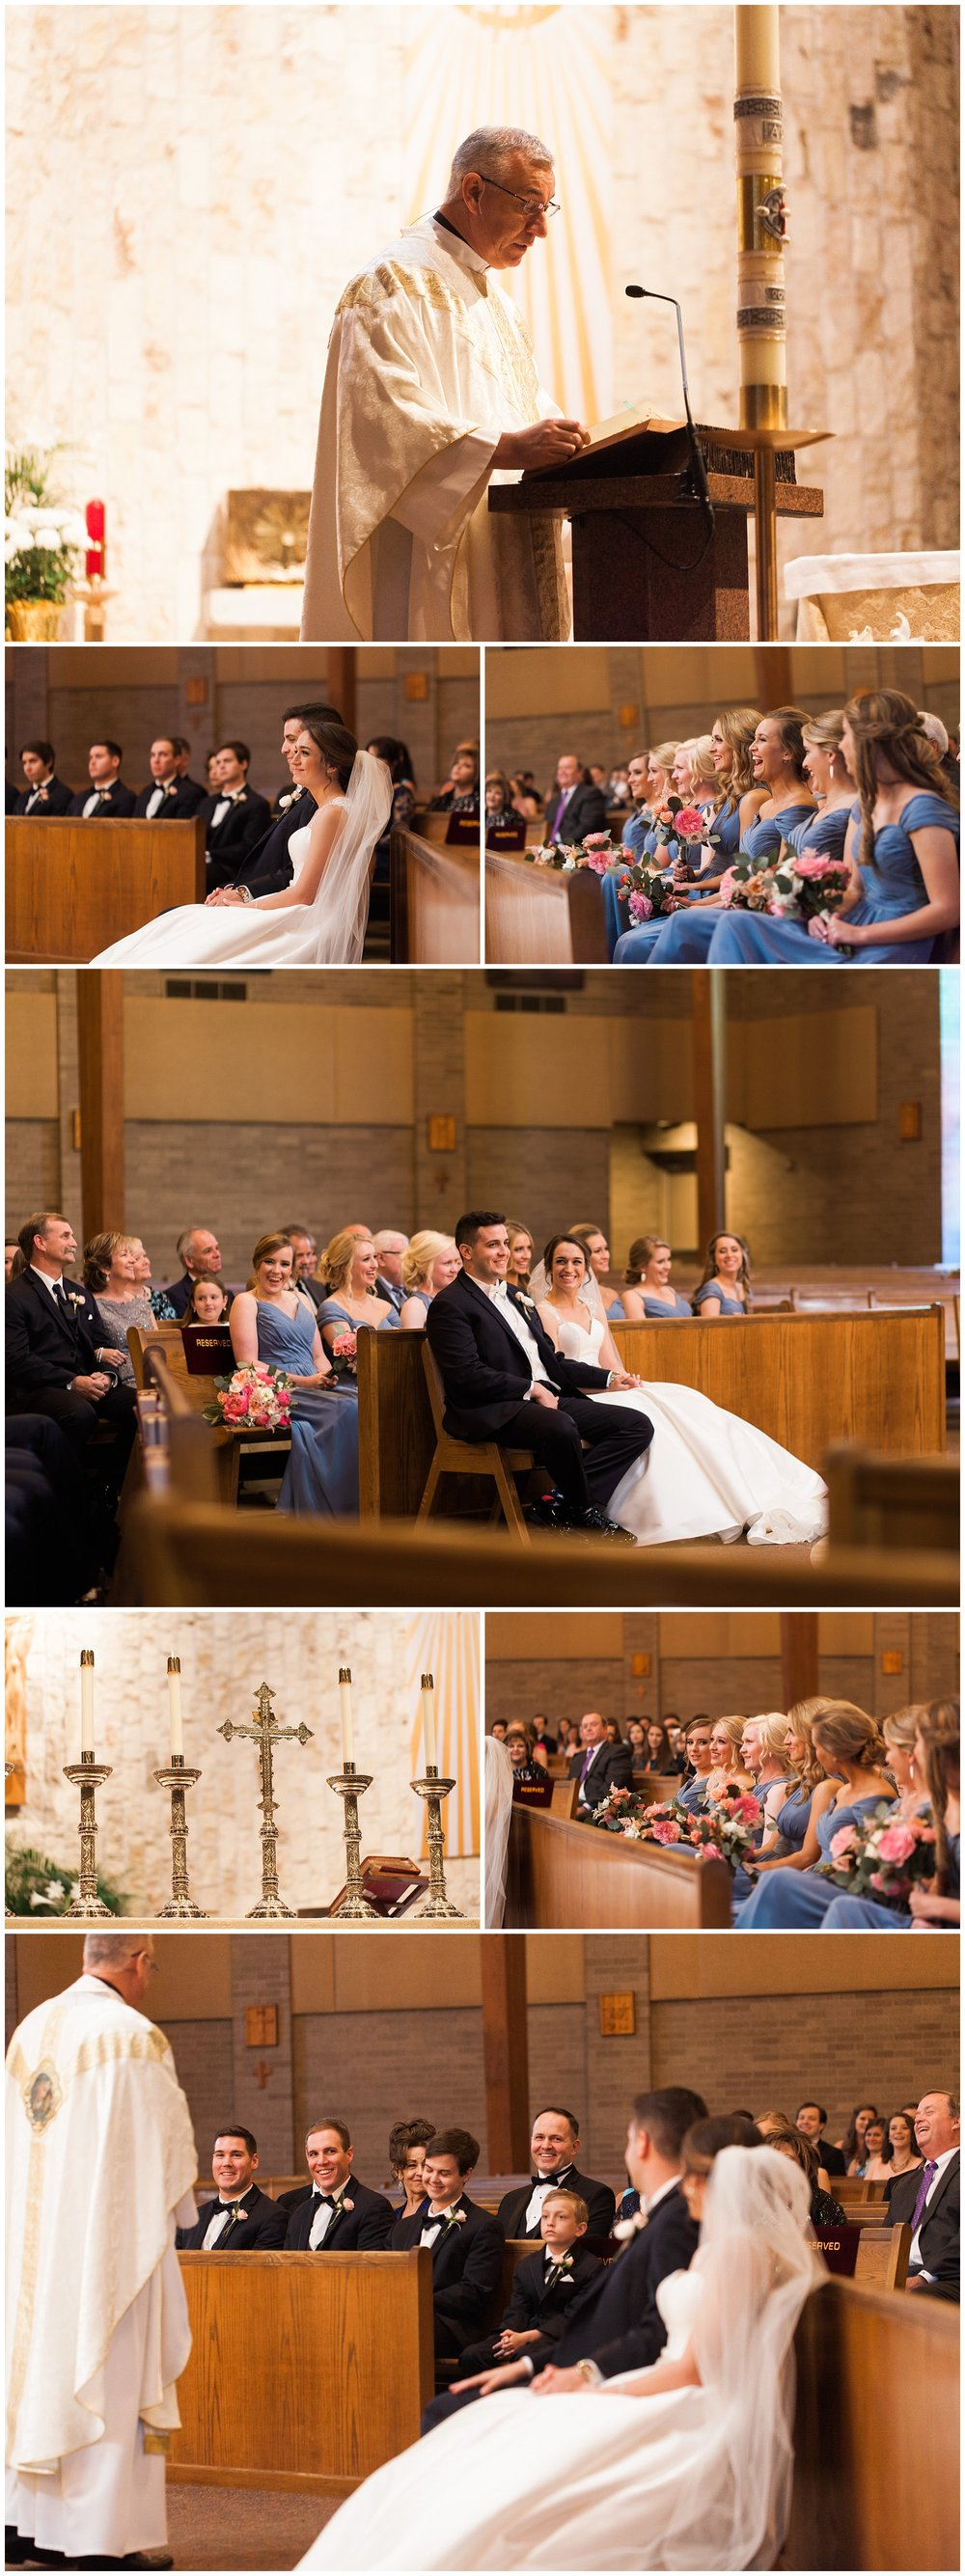 Brownstone_Reserve_Wedding_Kristina_Ross_Photography_0016.jpg